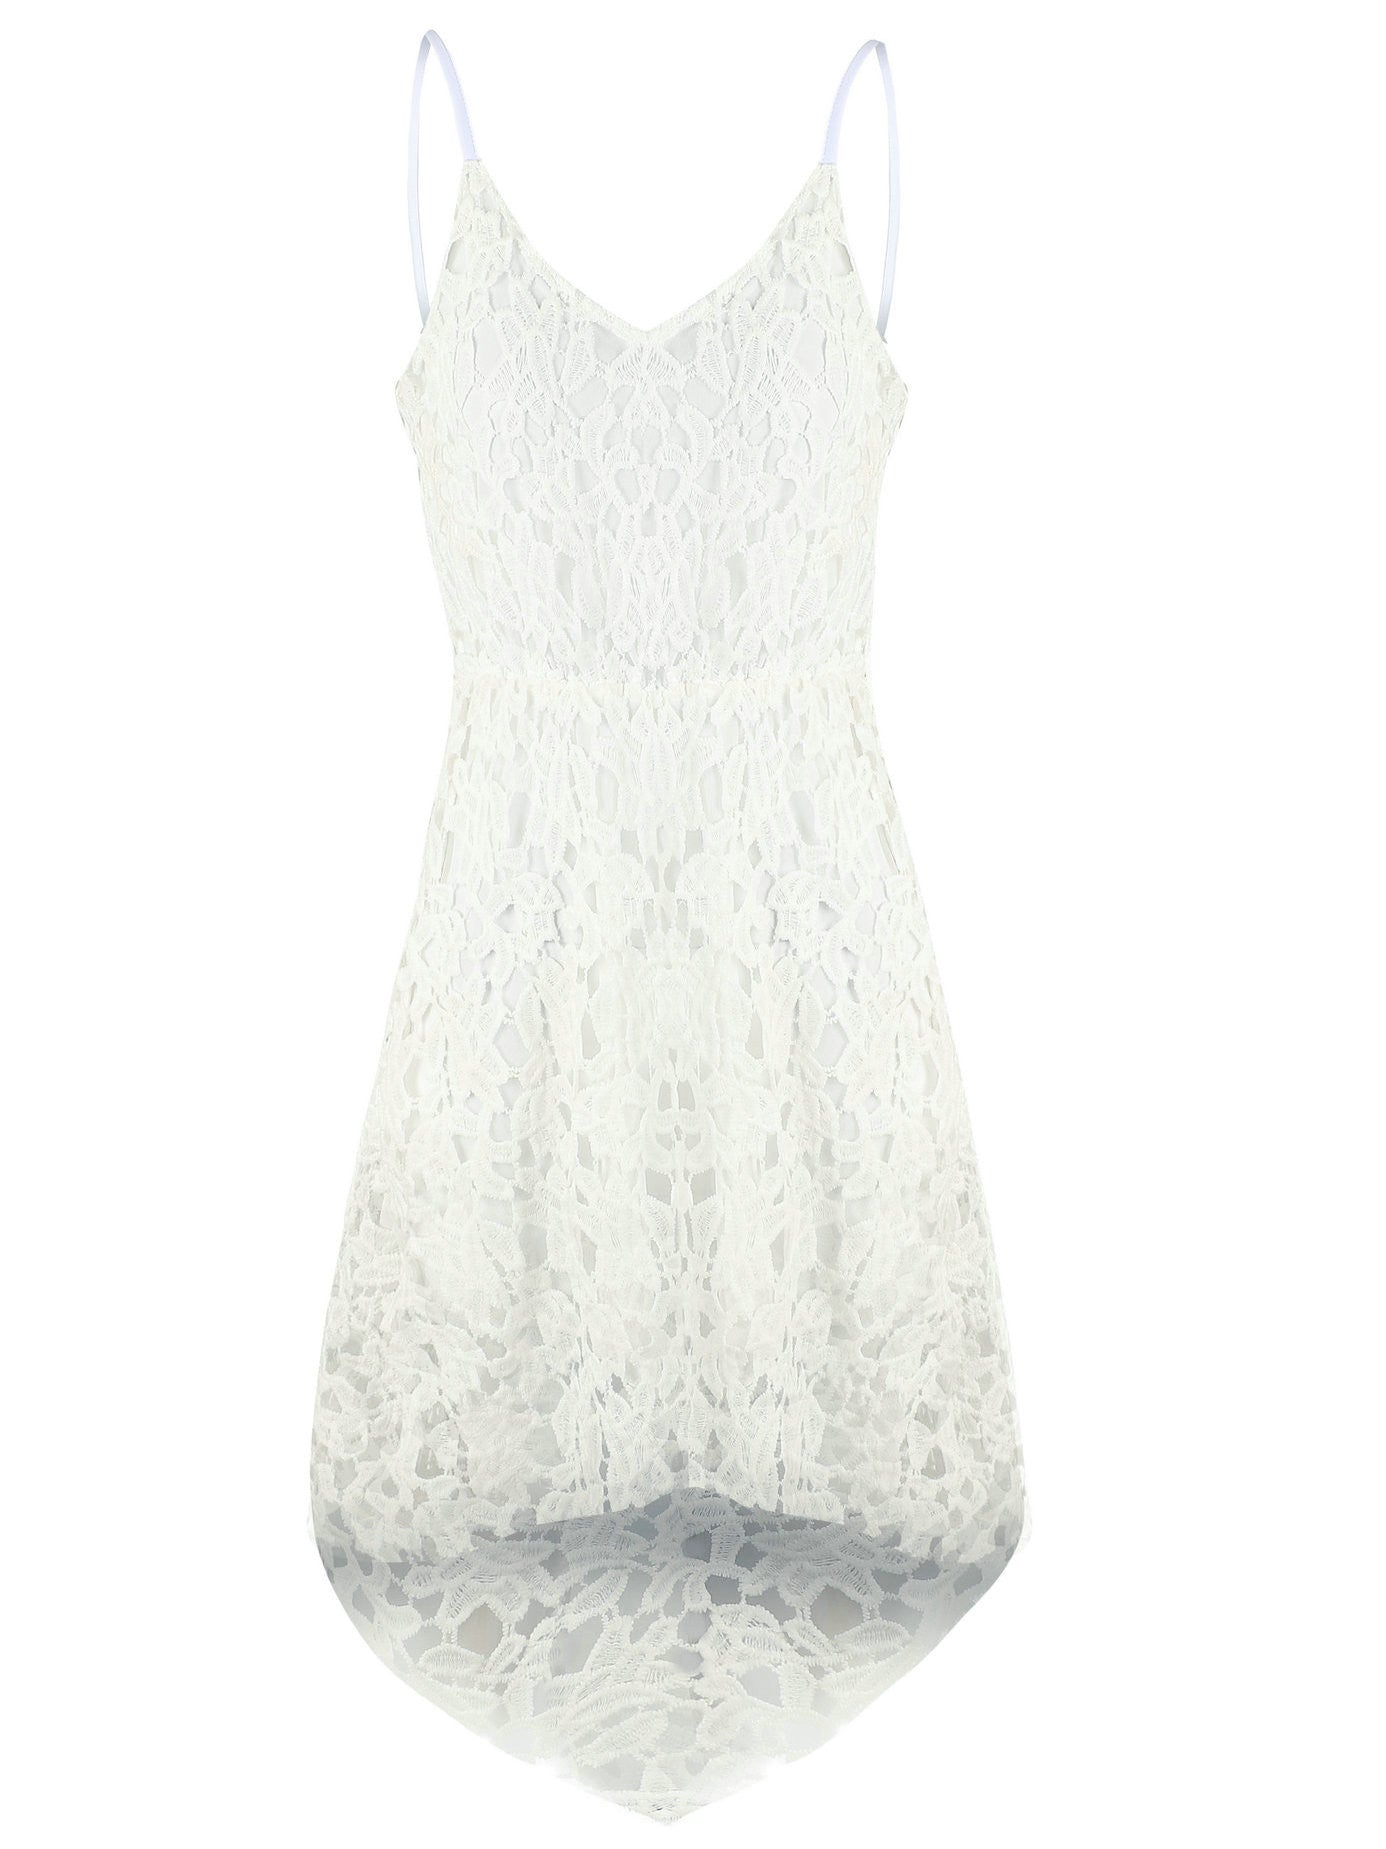 """Pretty In Lace"" Spaghetti Strap Dress - allgasnobrakez.com"